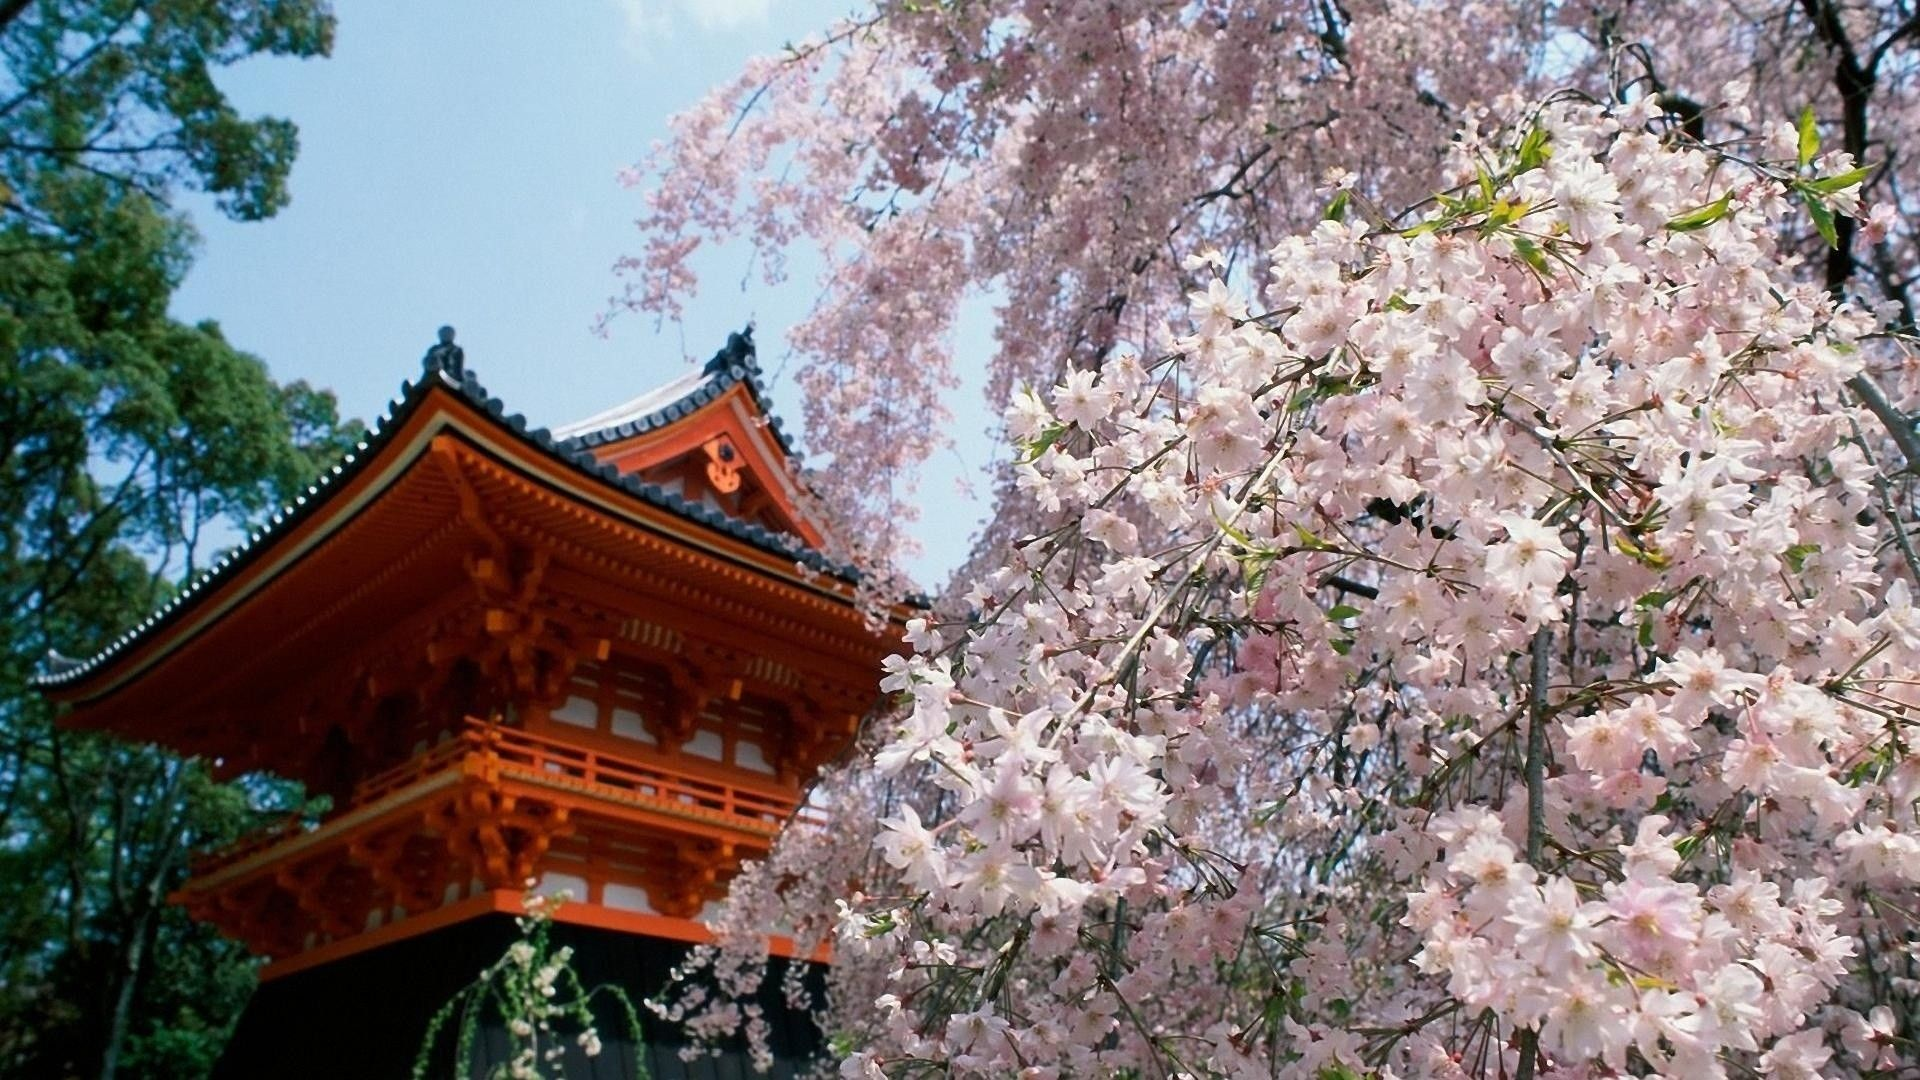 Japanese Garden Wallpapers: Japanese Garden Cherry Blossom Wallpapers